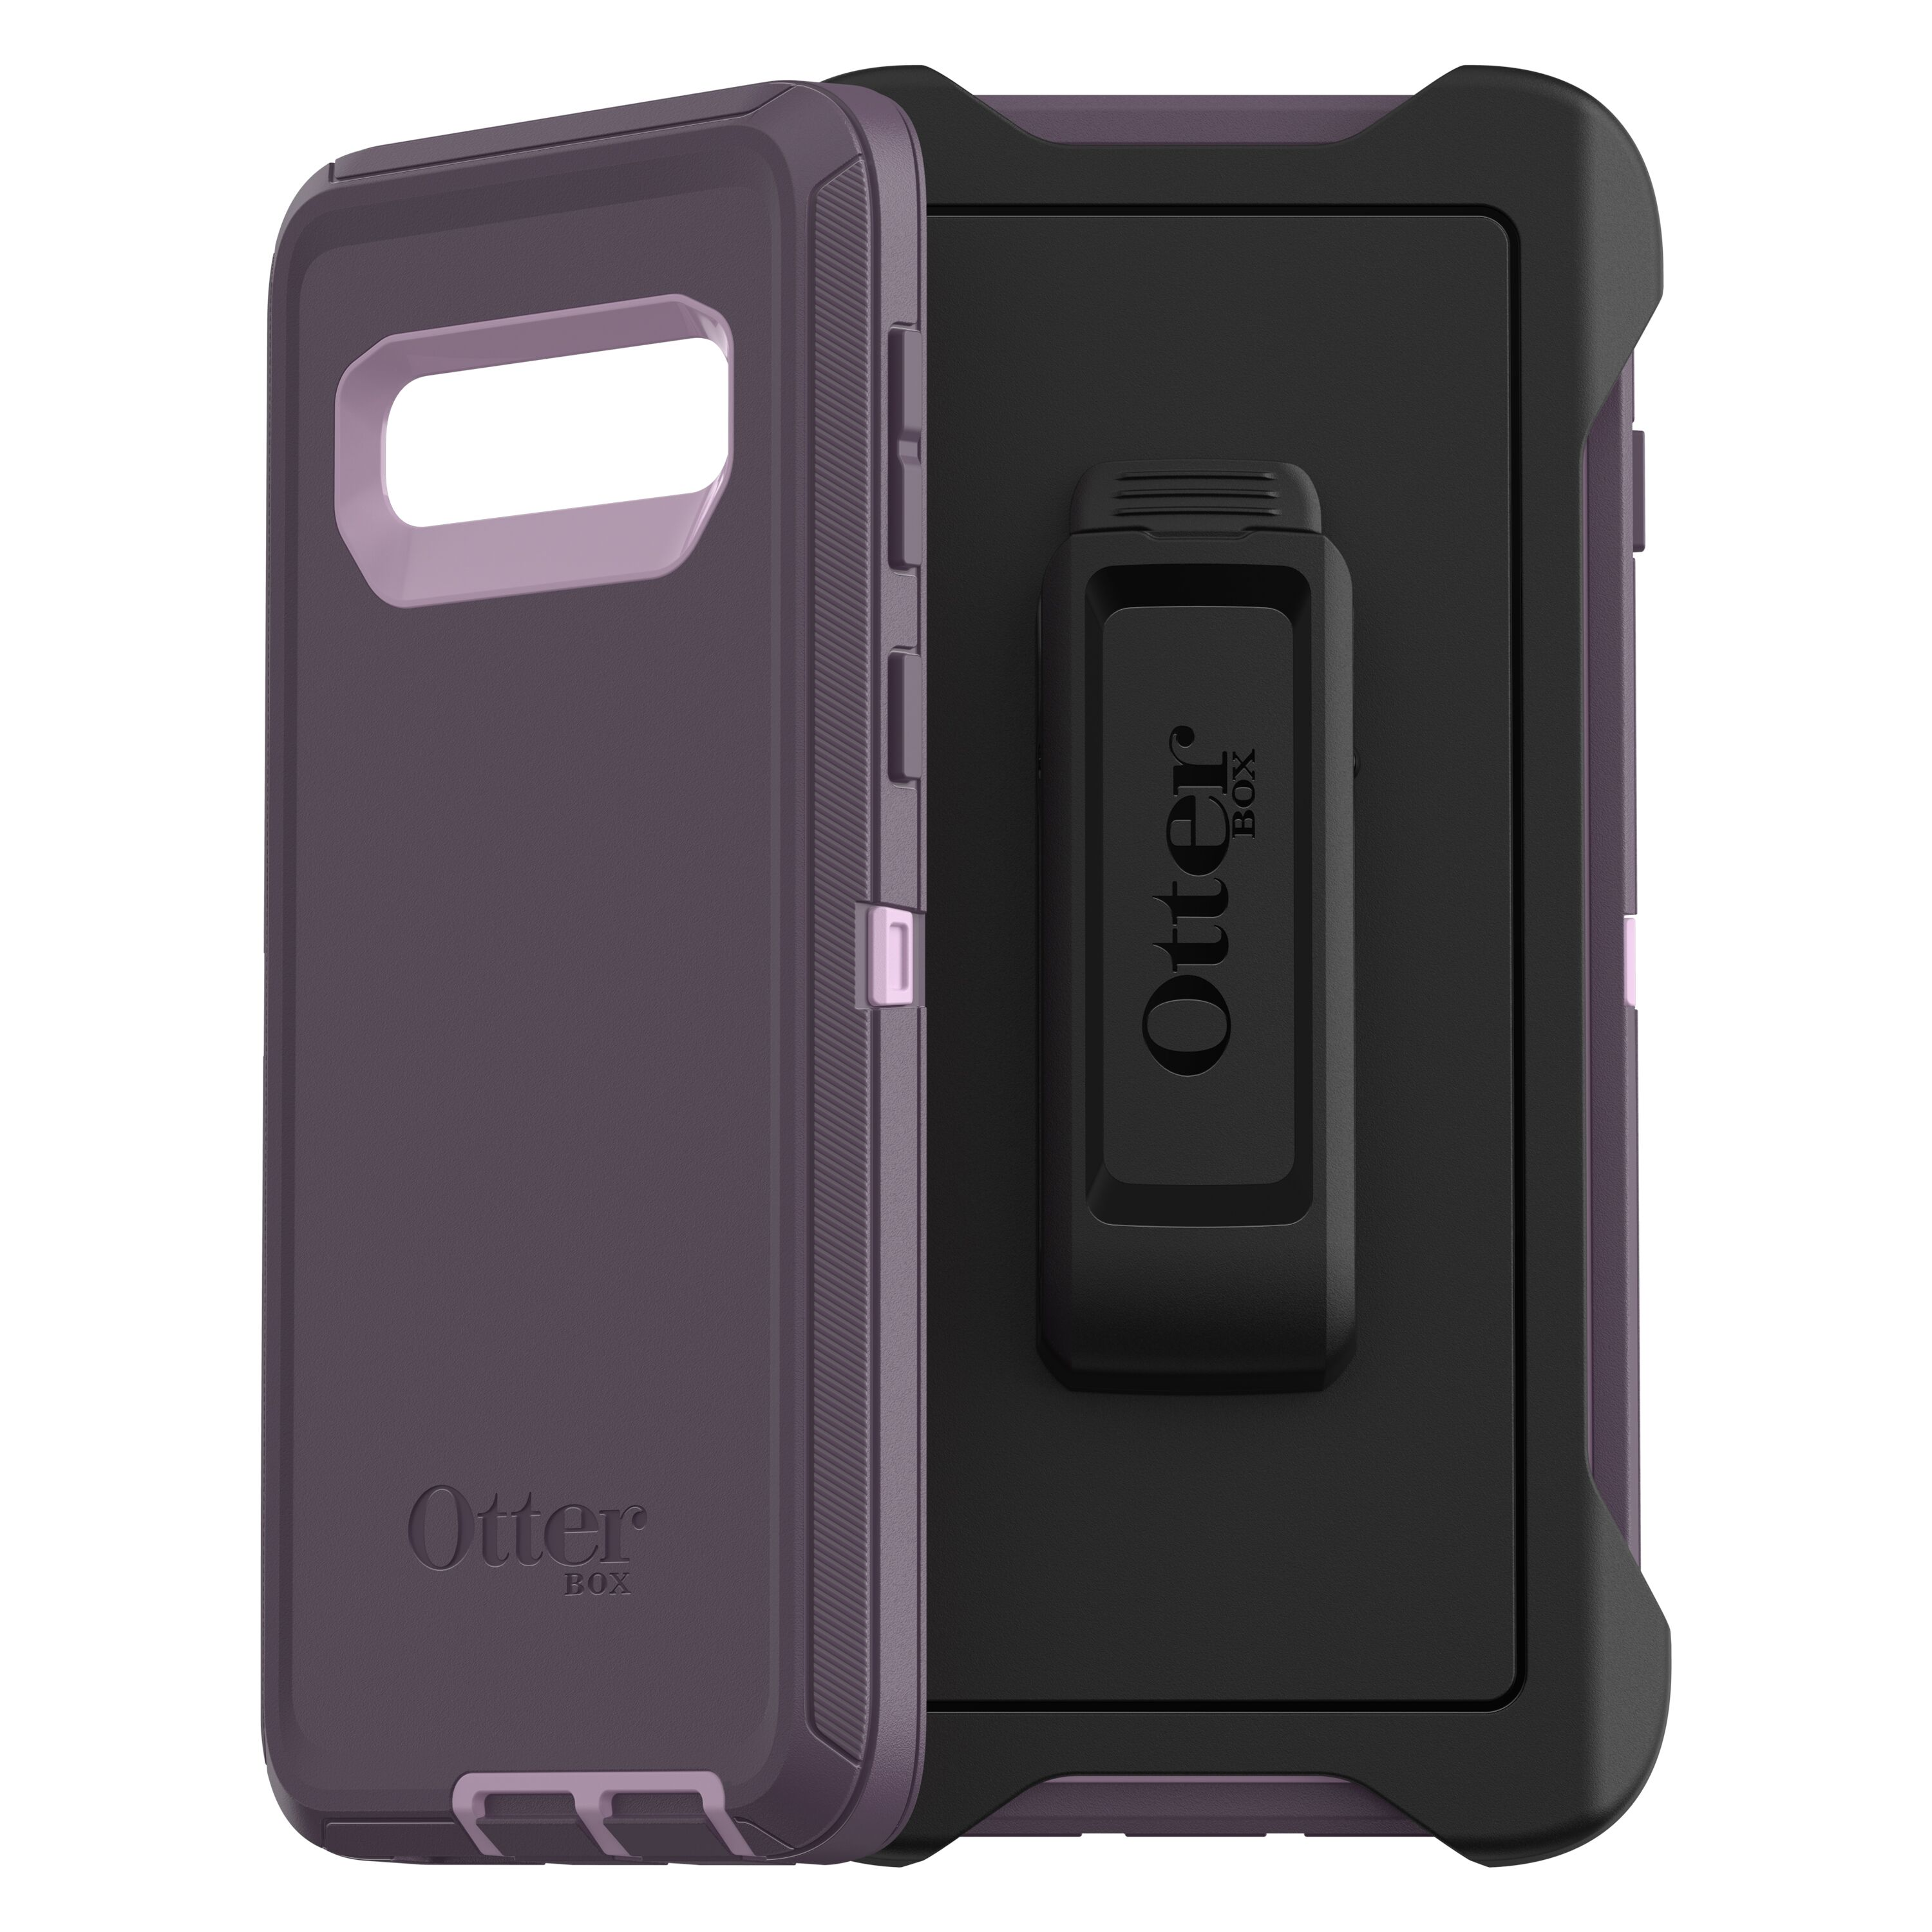 Otterbox: The Defender